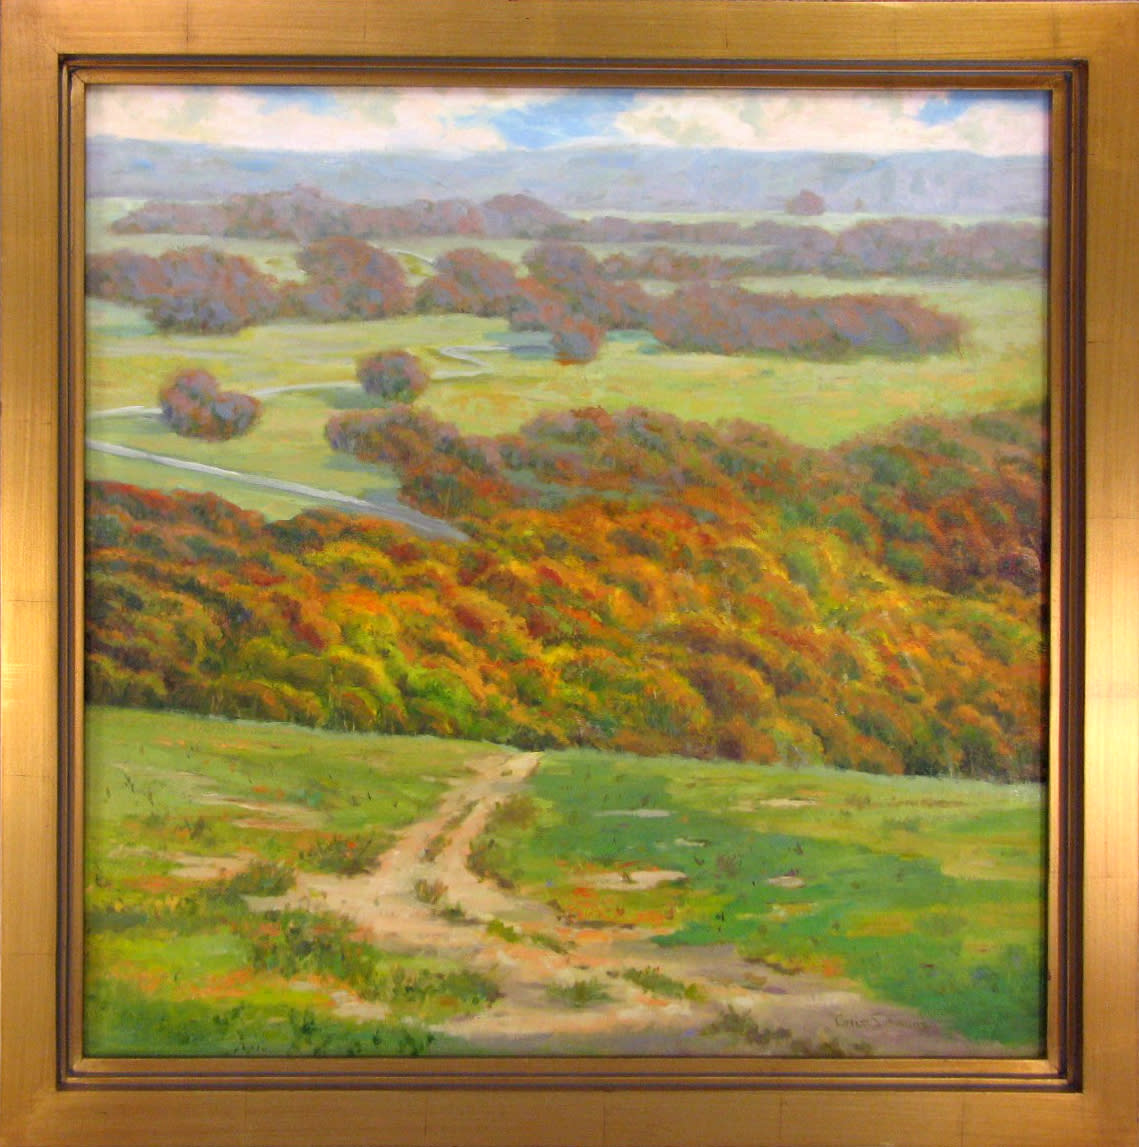 Virginia grass simmons   wrapped in the highland   oil   20 x 30   2500 ks0n0t